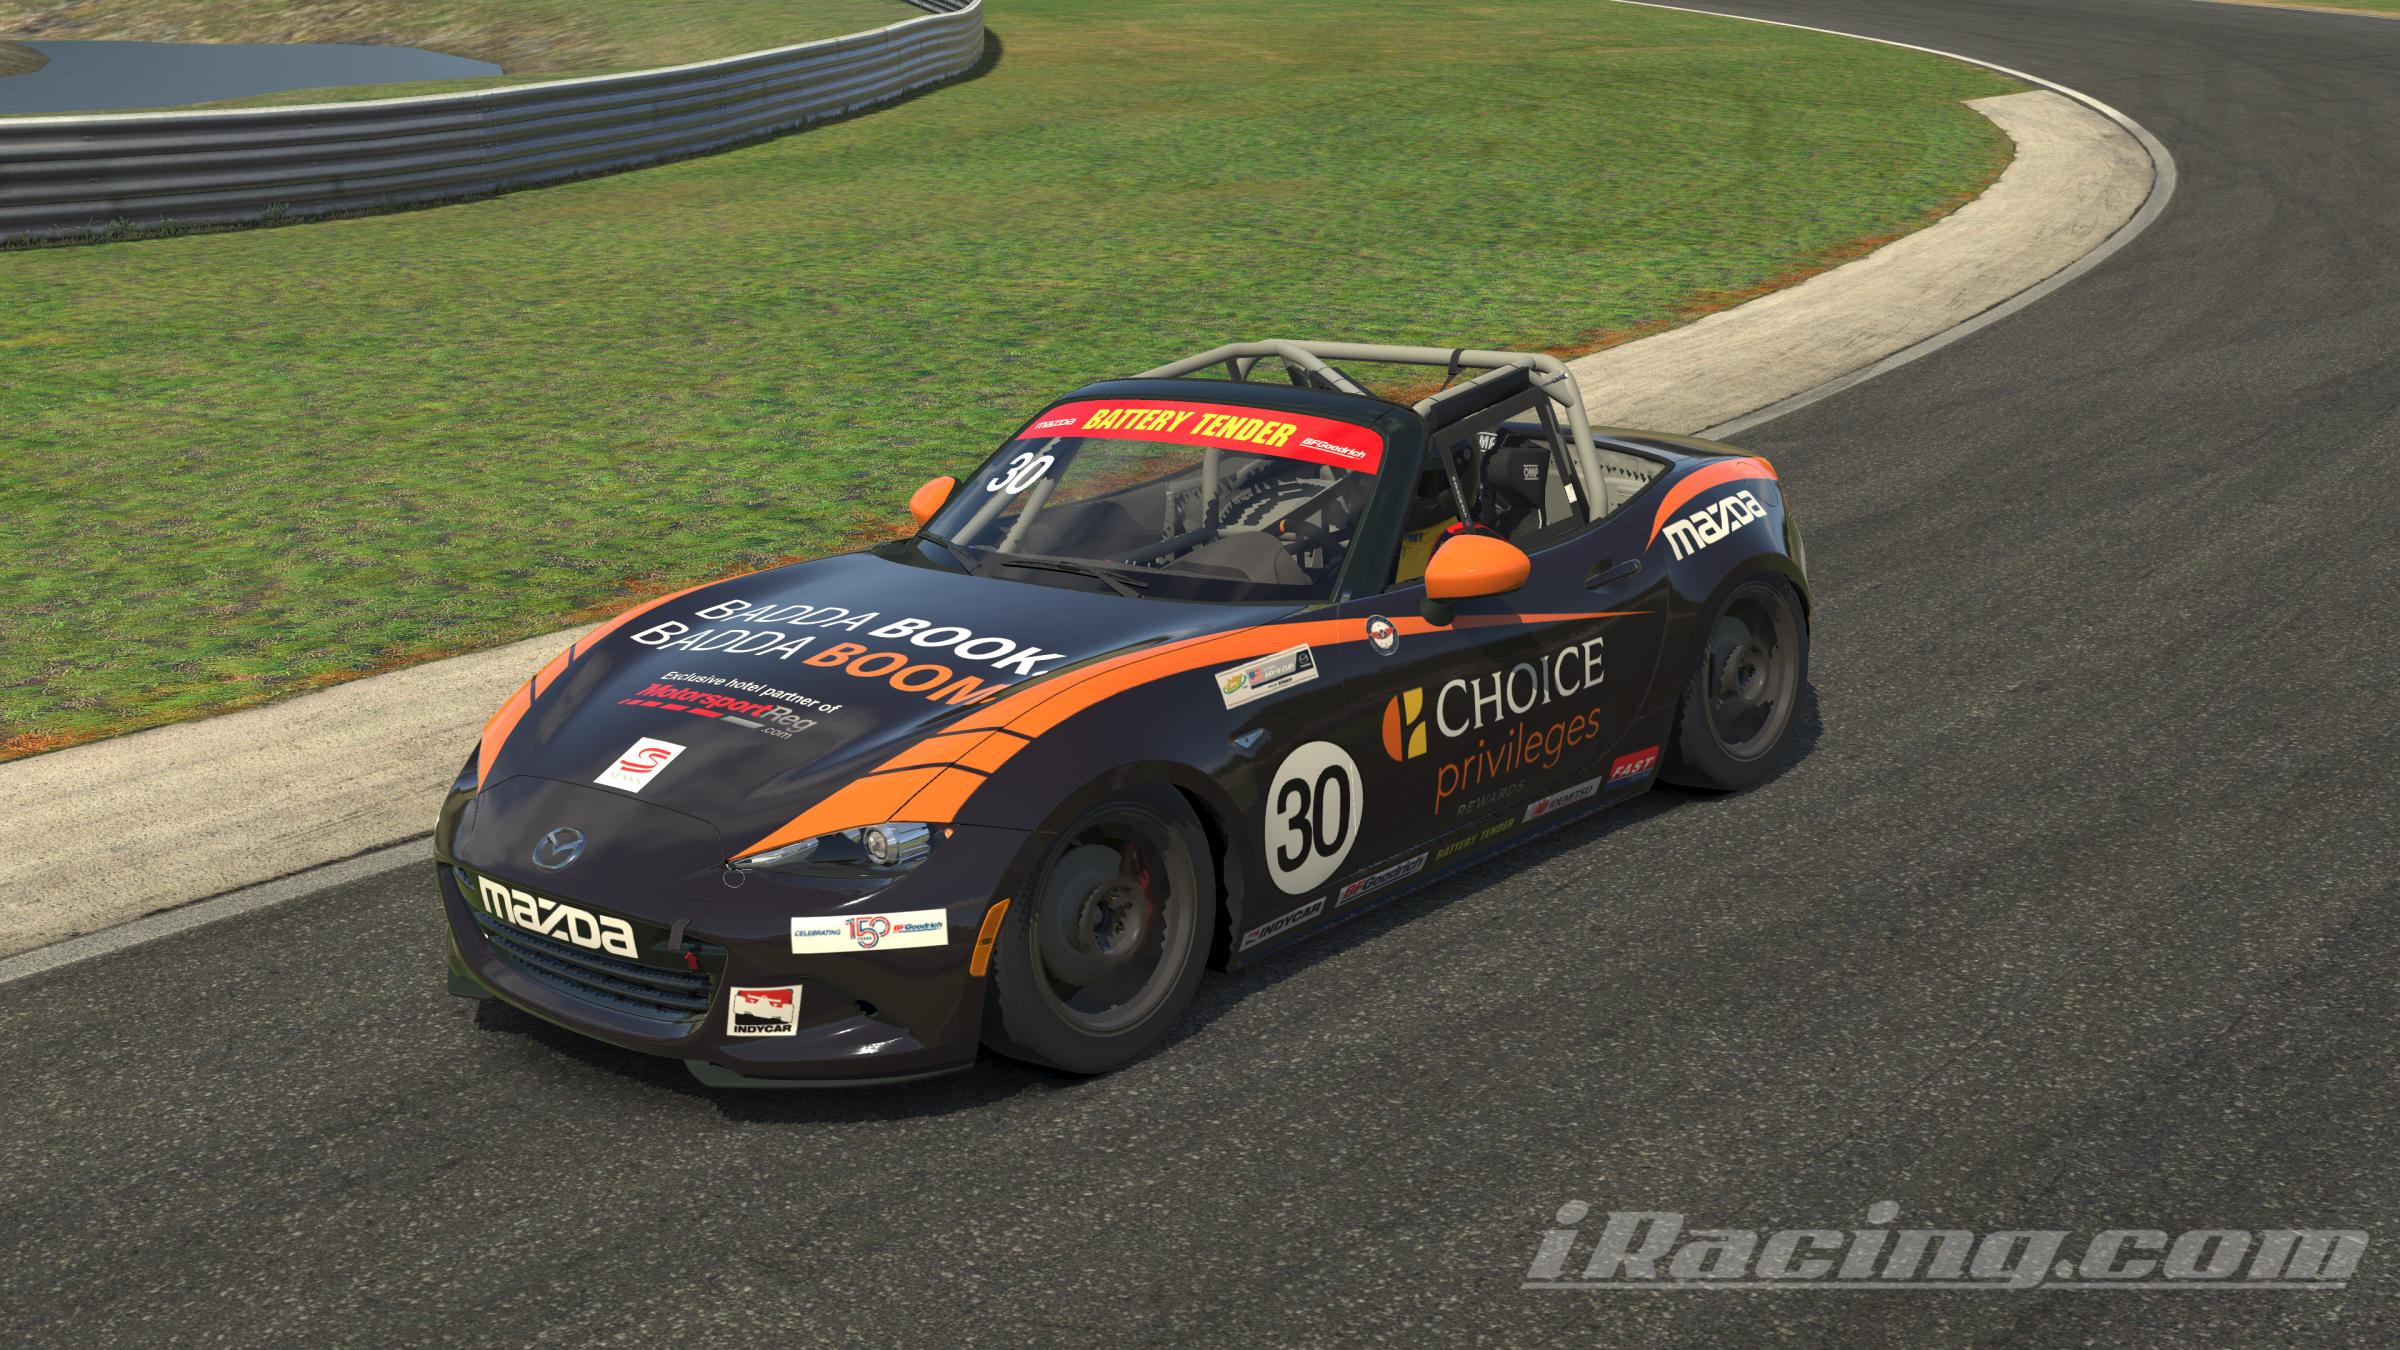 Preview of Mazda MX-5 Global Cup - Ted Sahley Choice Rewards by Andrew Blackmore